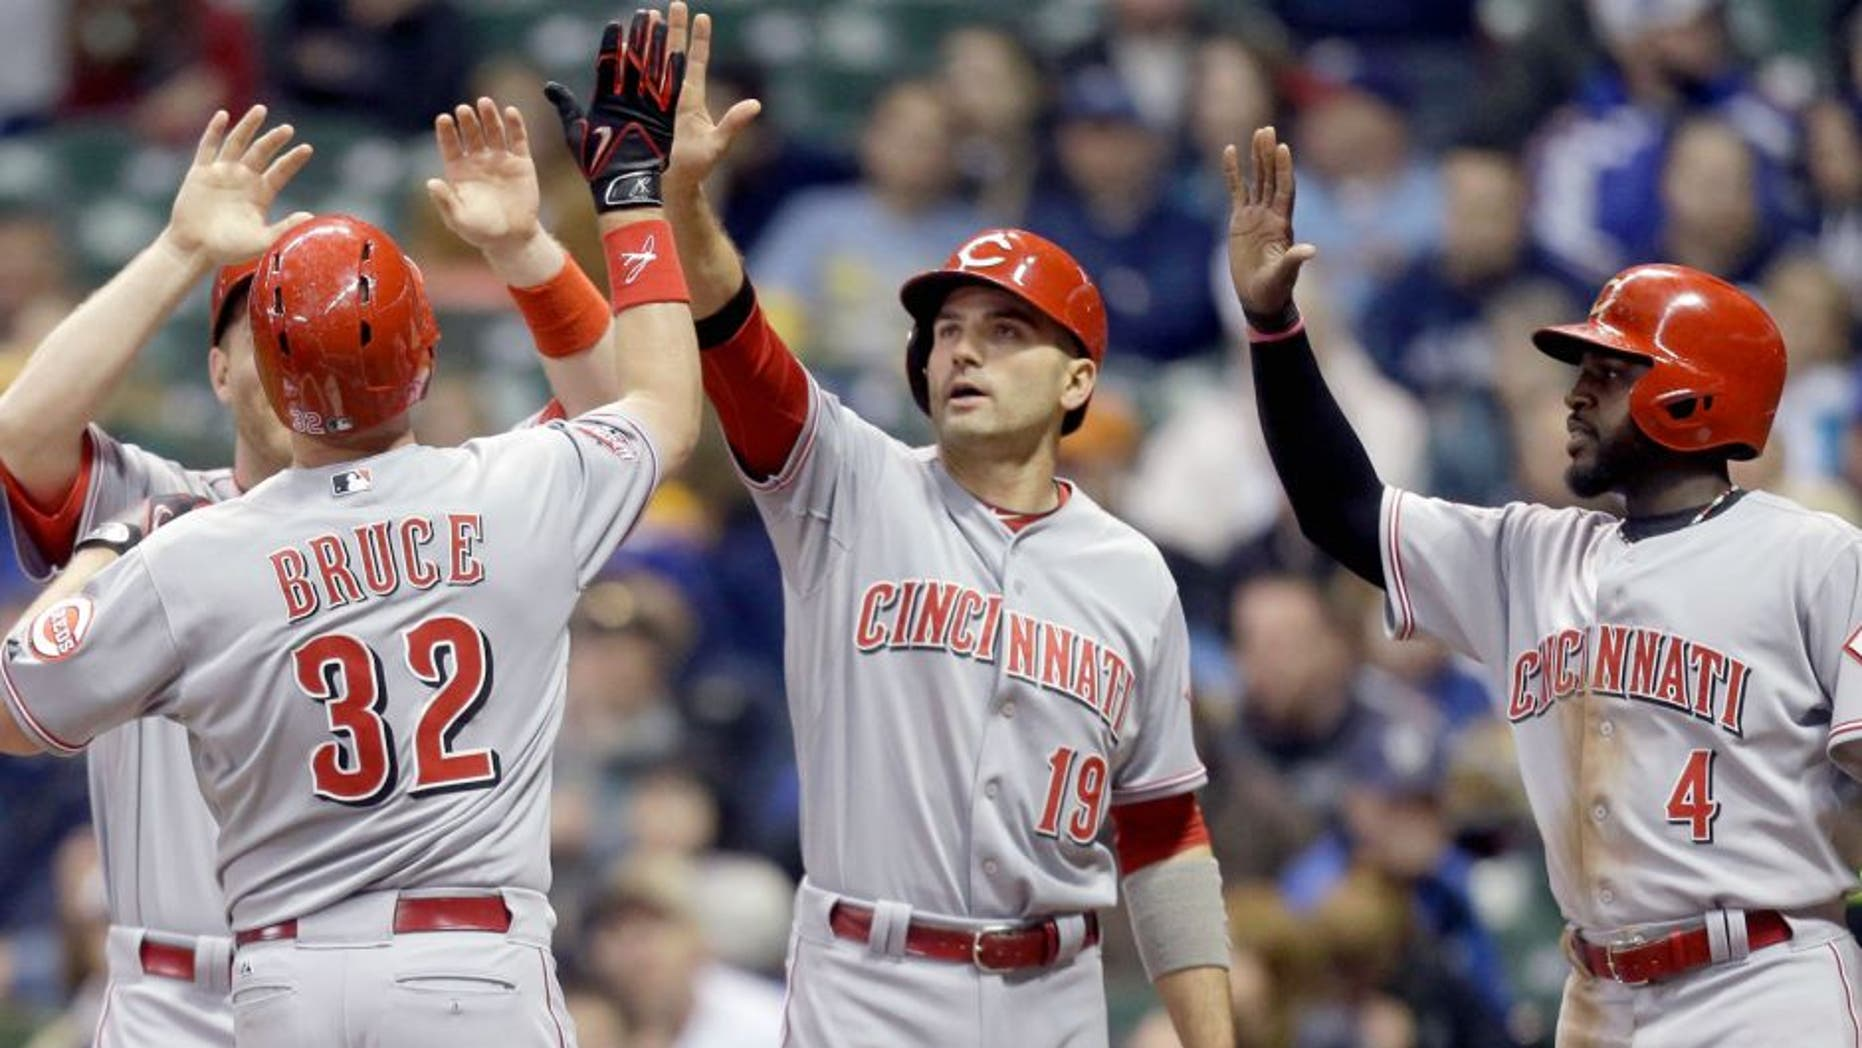 MILWAUKEE, WI - APRIL 21: Jay Bruce #32 of the Cincinnati Reds celebrates with Todd Frazier #21, Joey Votto #19 and Brandon Phillips #4 after hitting a grand slam in the third inning against the Milwaukee Brewers at Miller Park on April 21, 2015 in Milwaukee, Wisconsin. (Photo by Mike McGinnis/Getty Images)